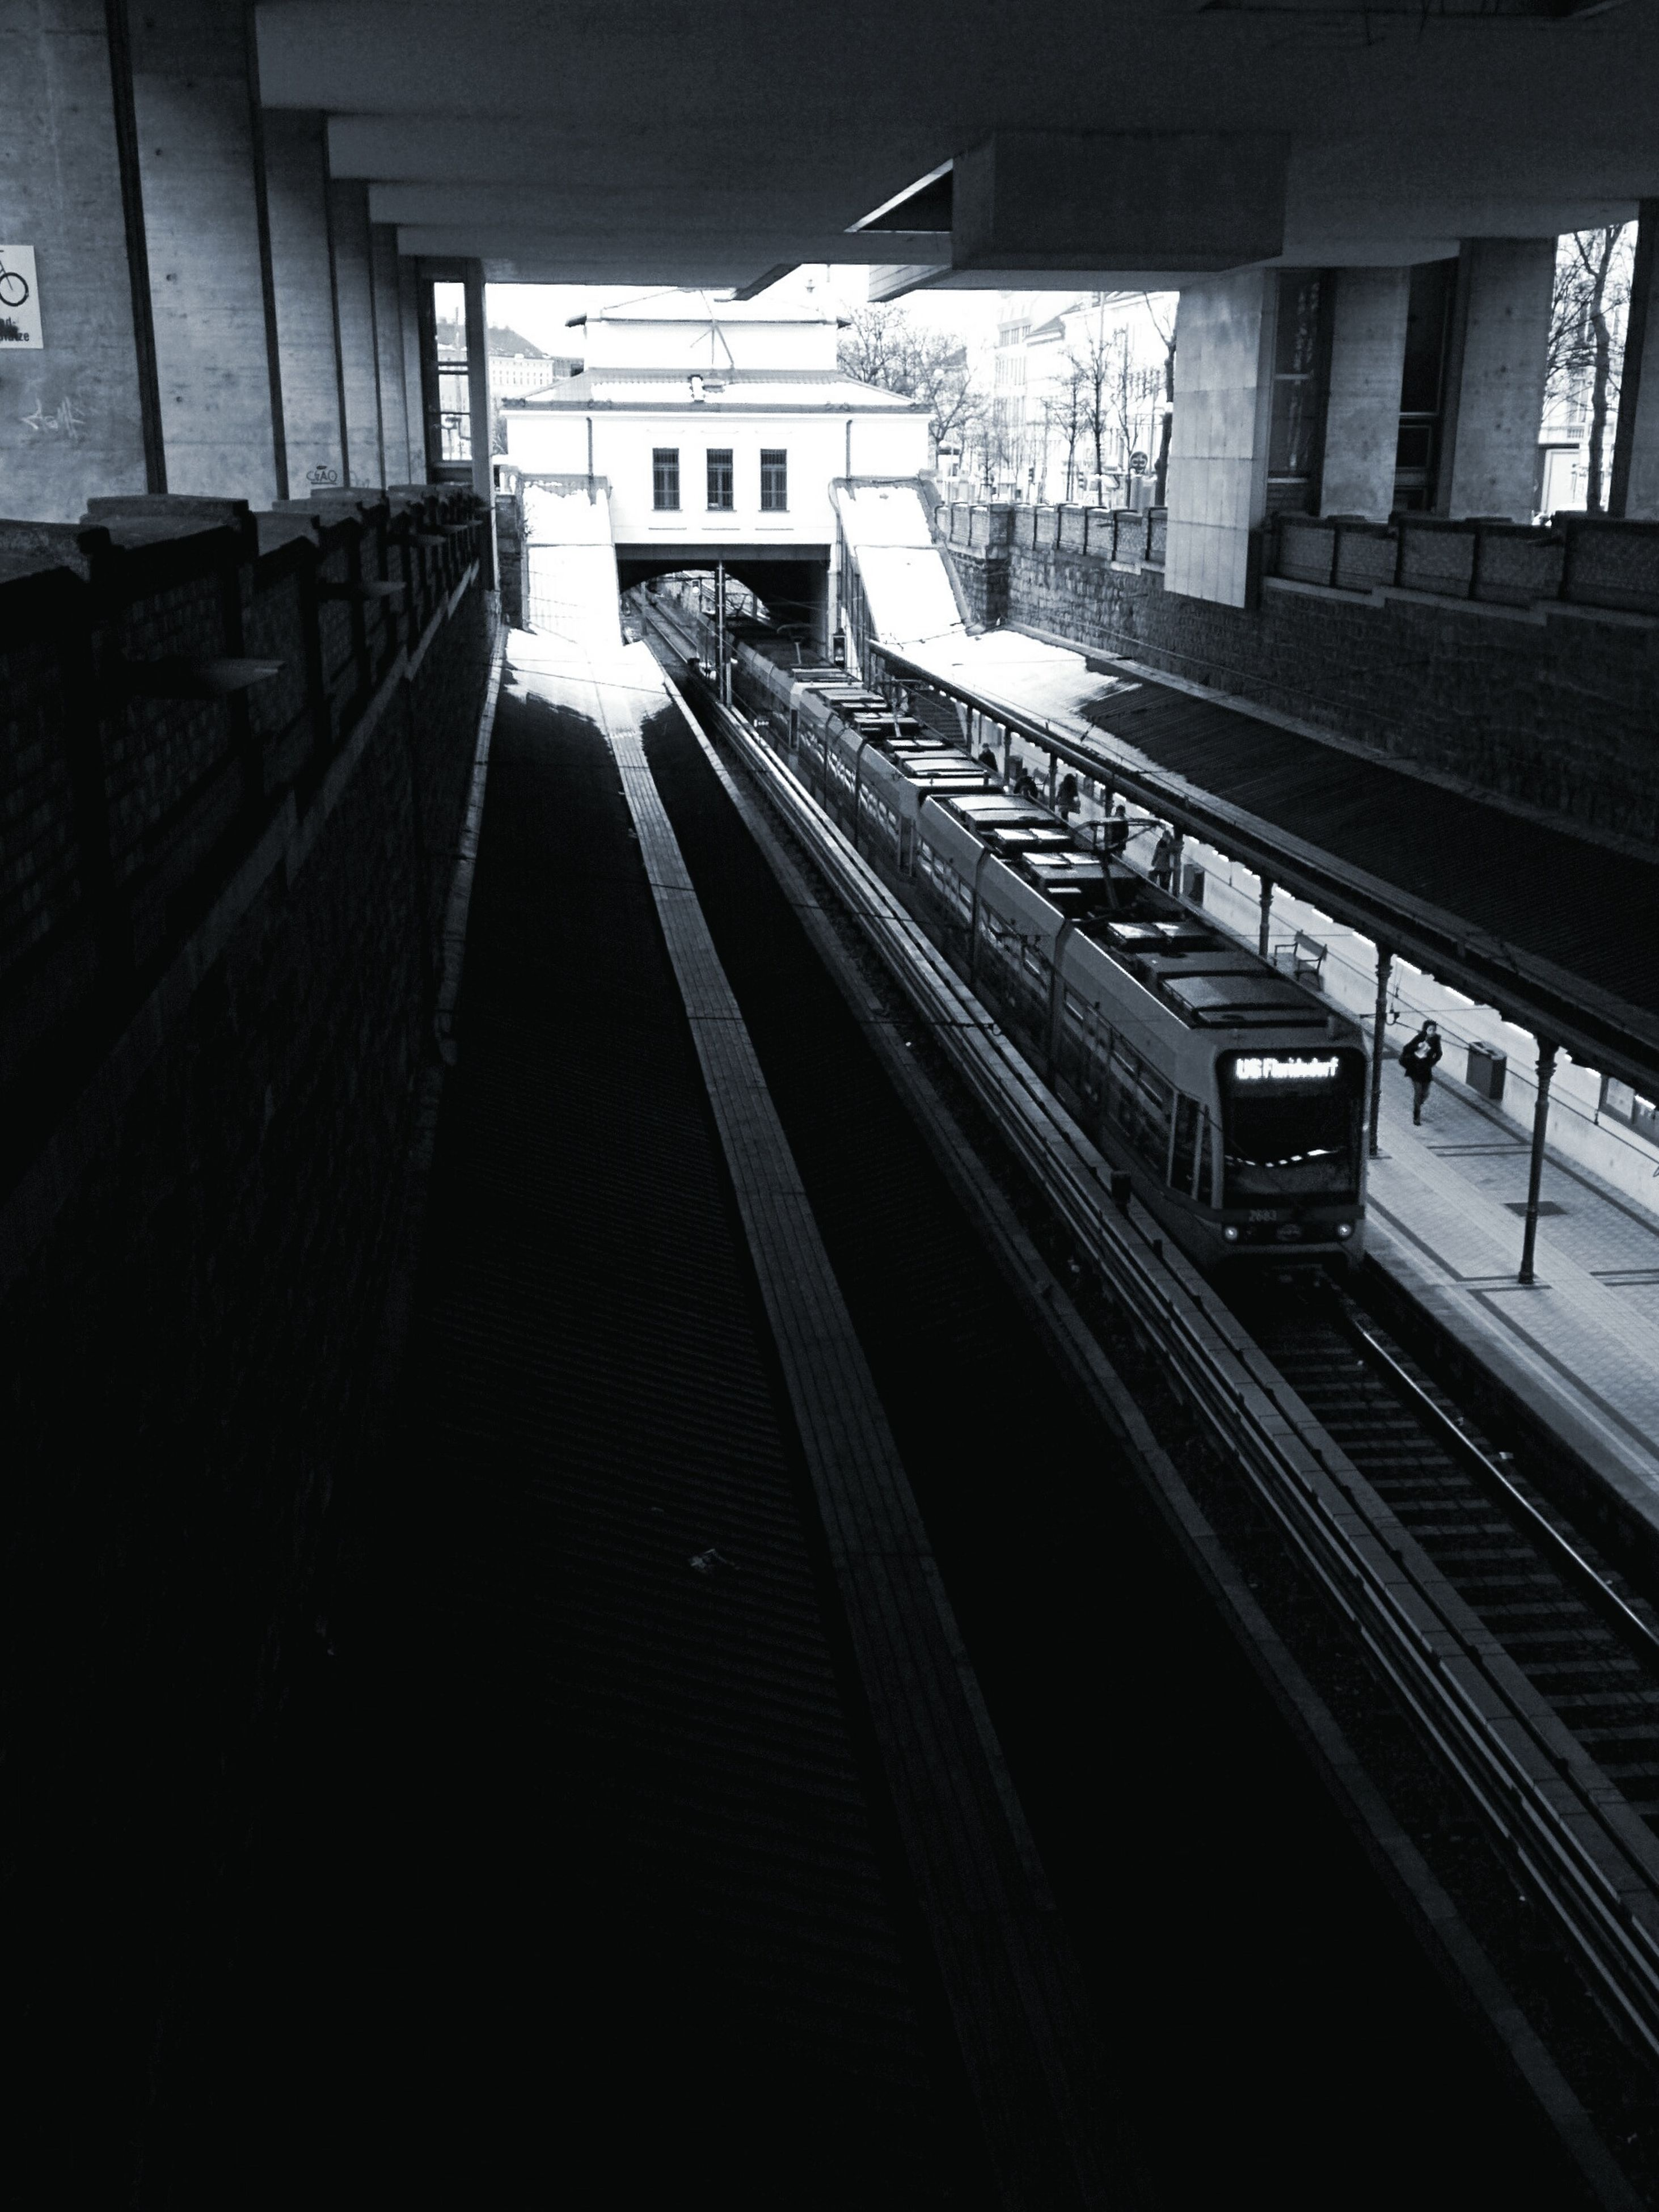 transportation, railroad track, public transportation, rail transportation, railroad station platform, railroad station, train - vehicle, mode of transport, built structure, architecture, public transport, passenger train, the way forward, travel, train, diminishing perspective, railway track, high angle view, journey, vanishing point